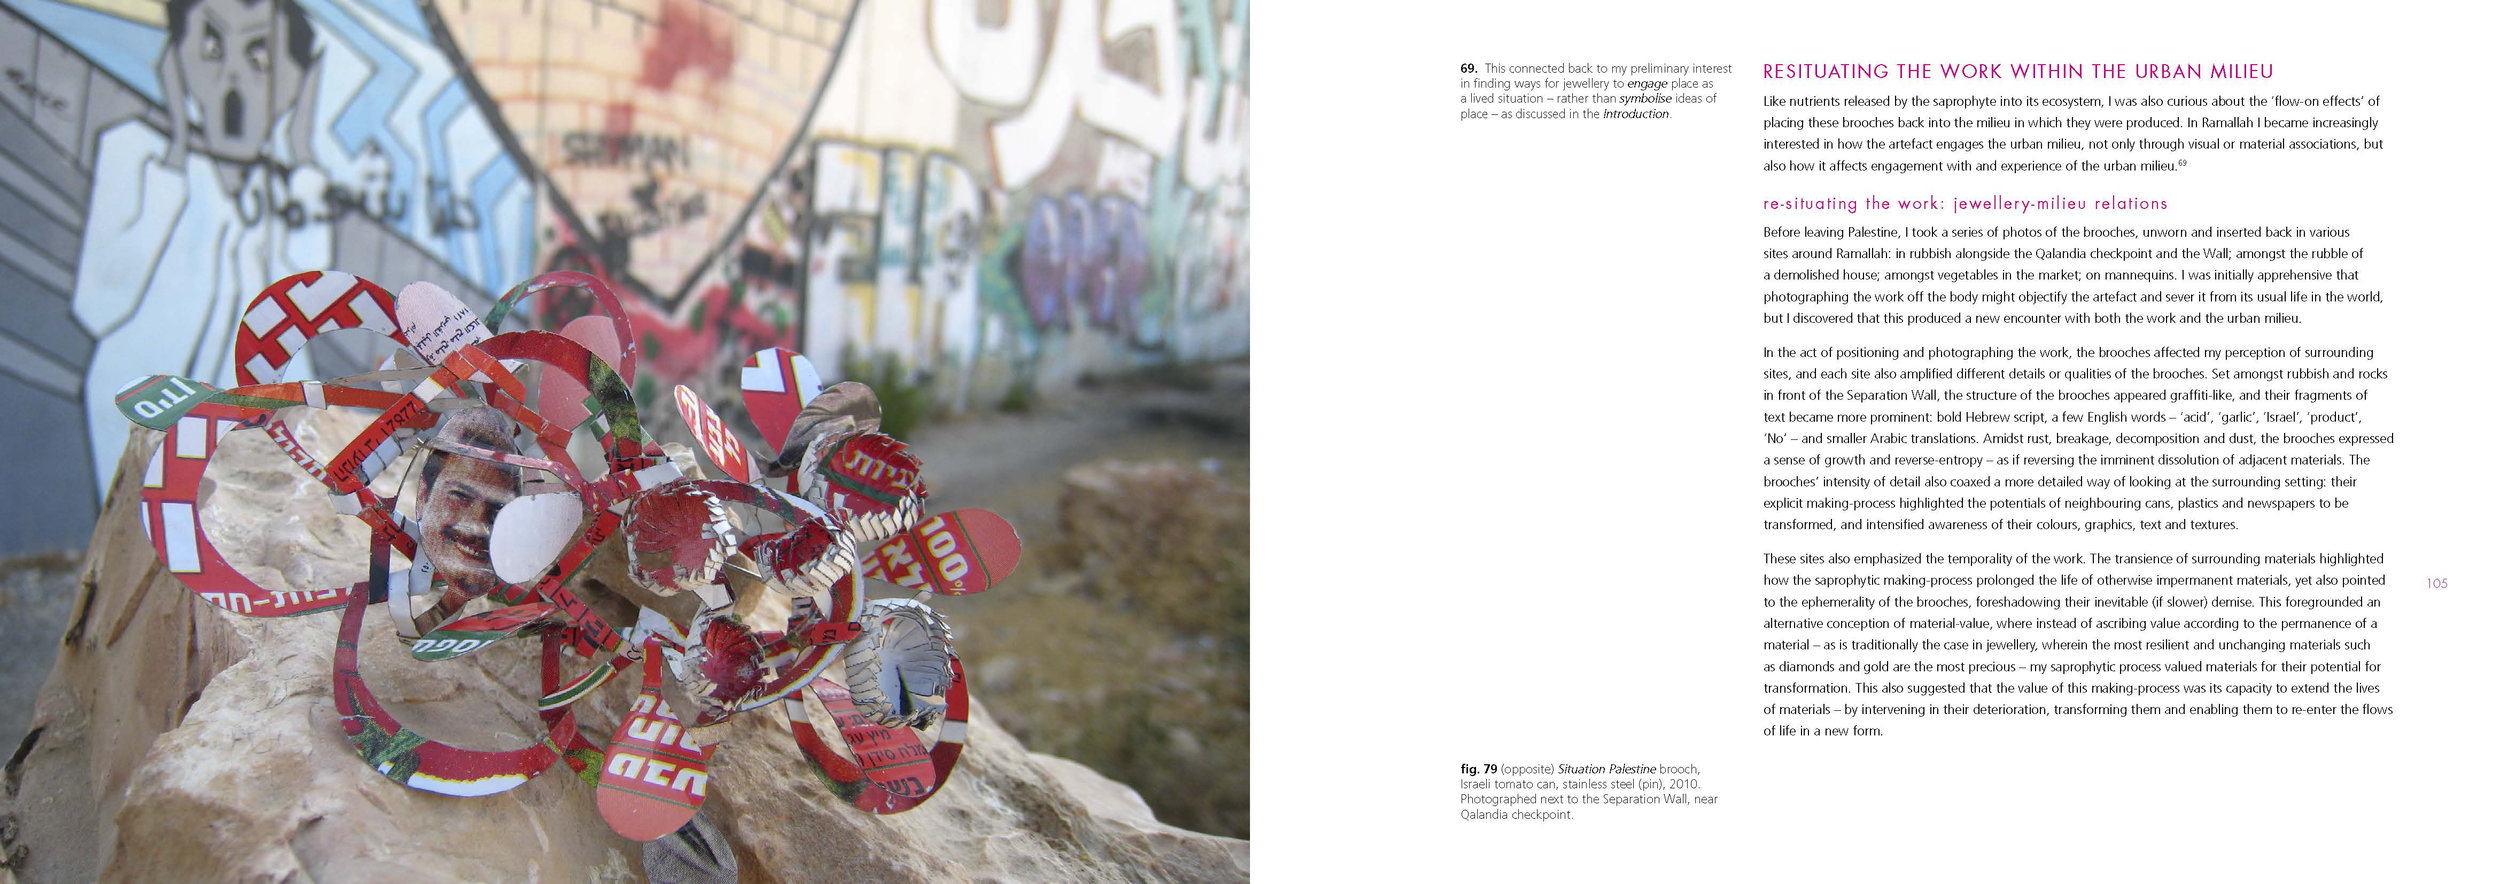 Jacqui Chan_jewellery in the urban milieu_part 2_project milieu 02 + 03_Page_026.jpg